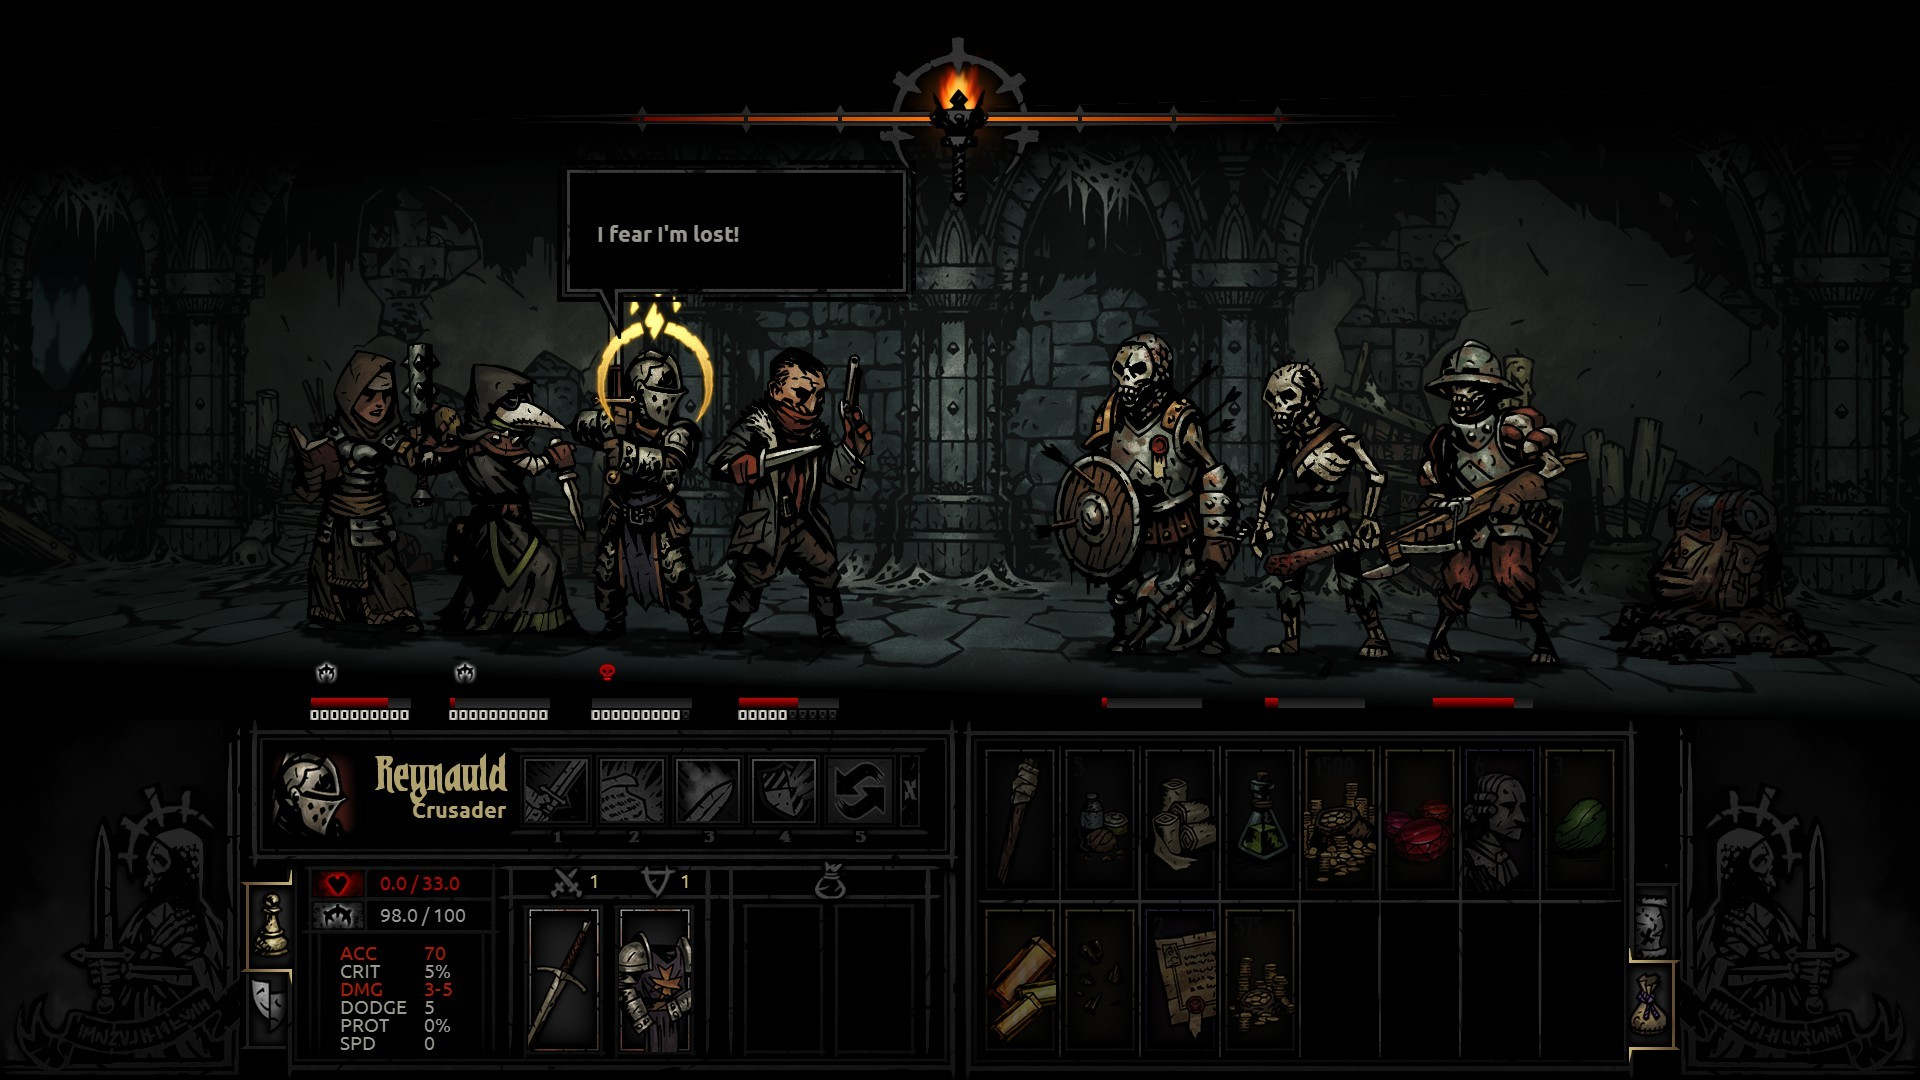 My first dungeon. Shortly after, my Plague Doctor died. Clearly I'm off to  a good start.